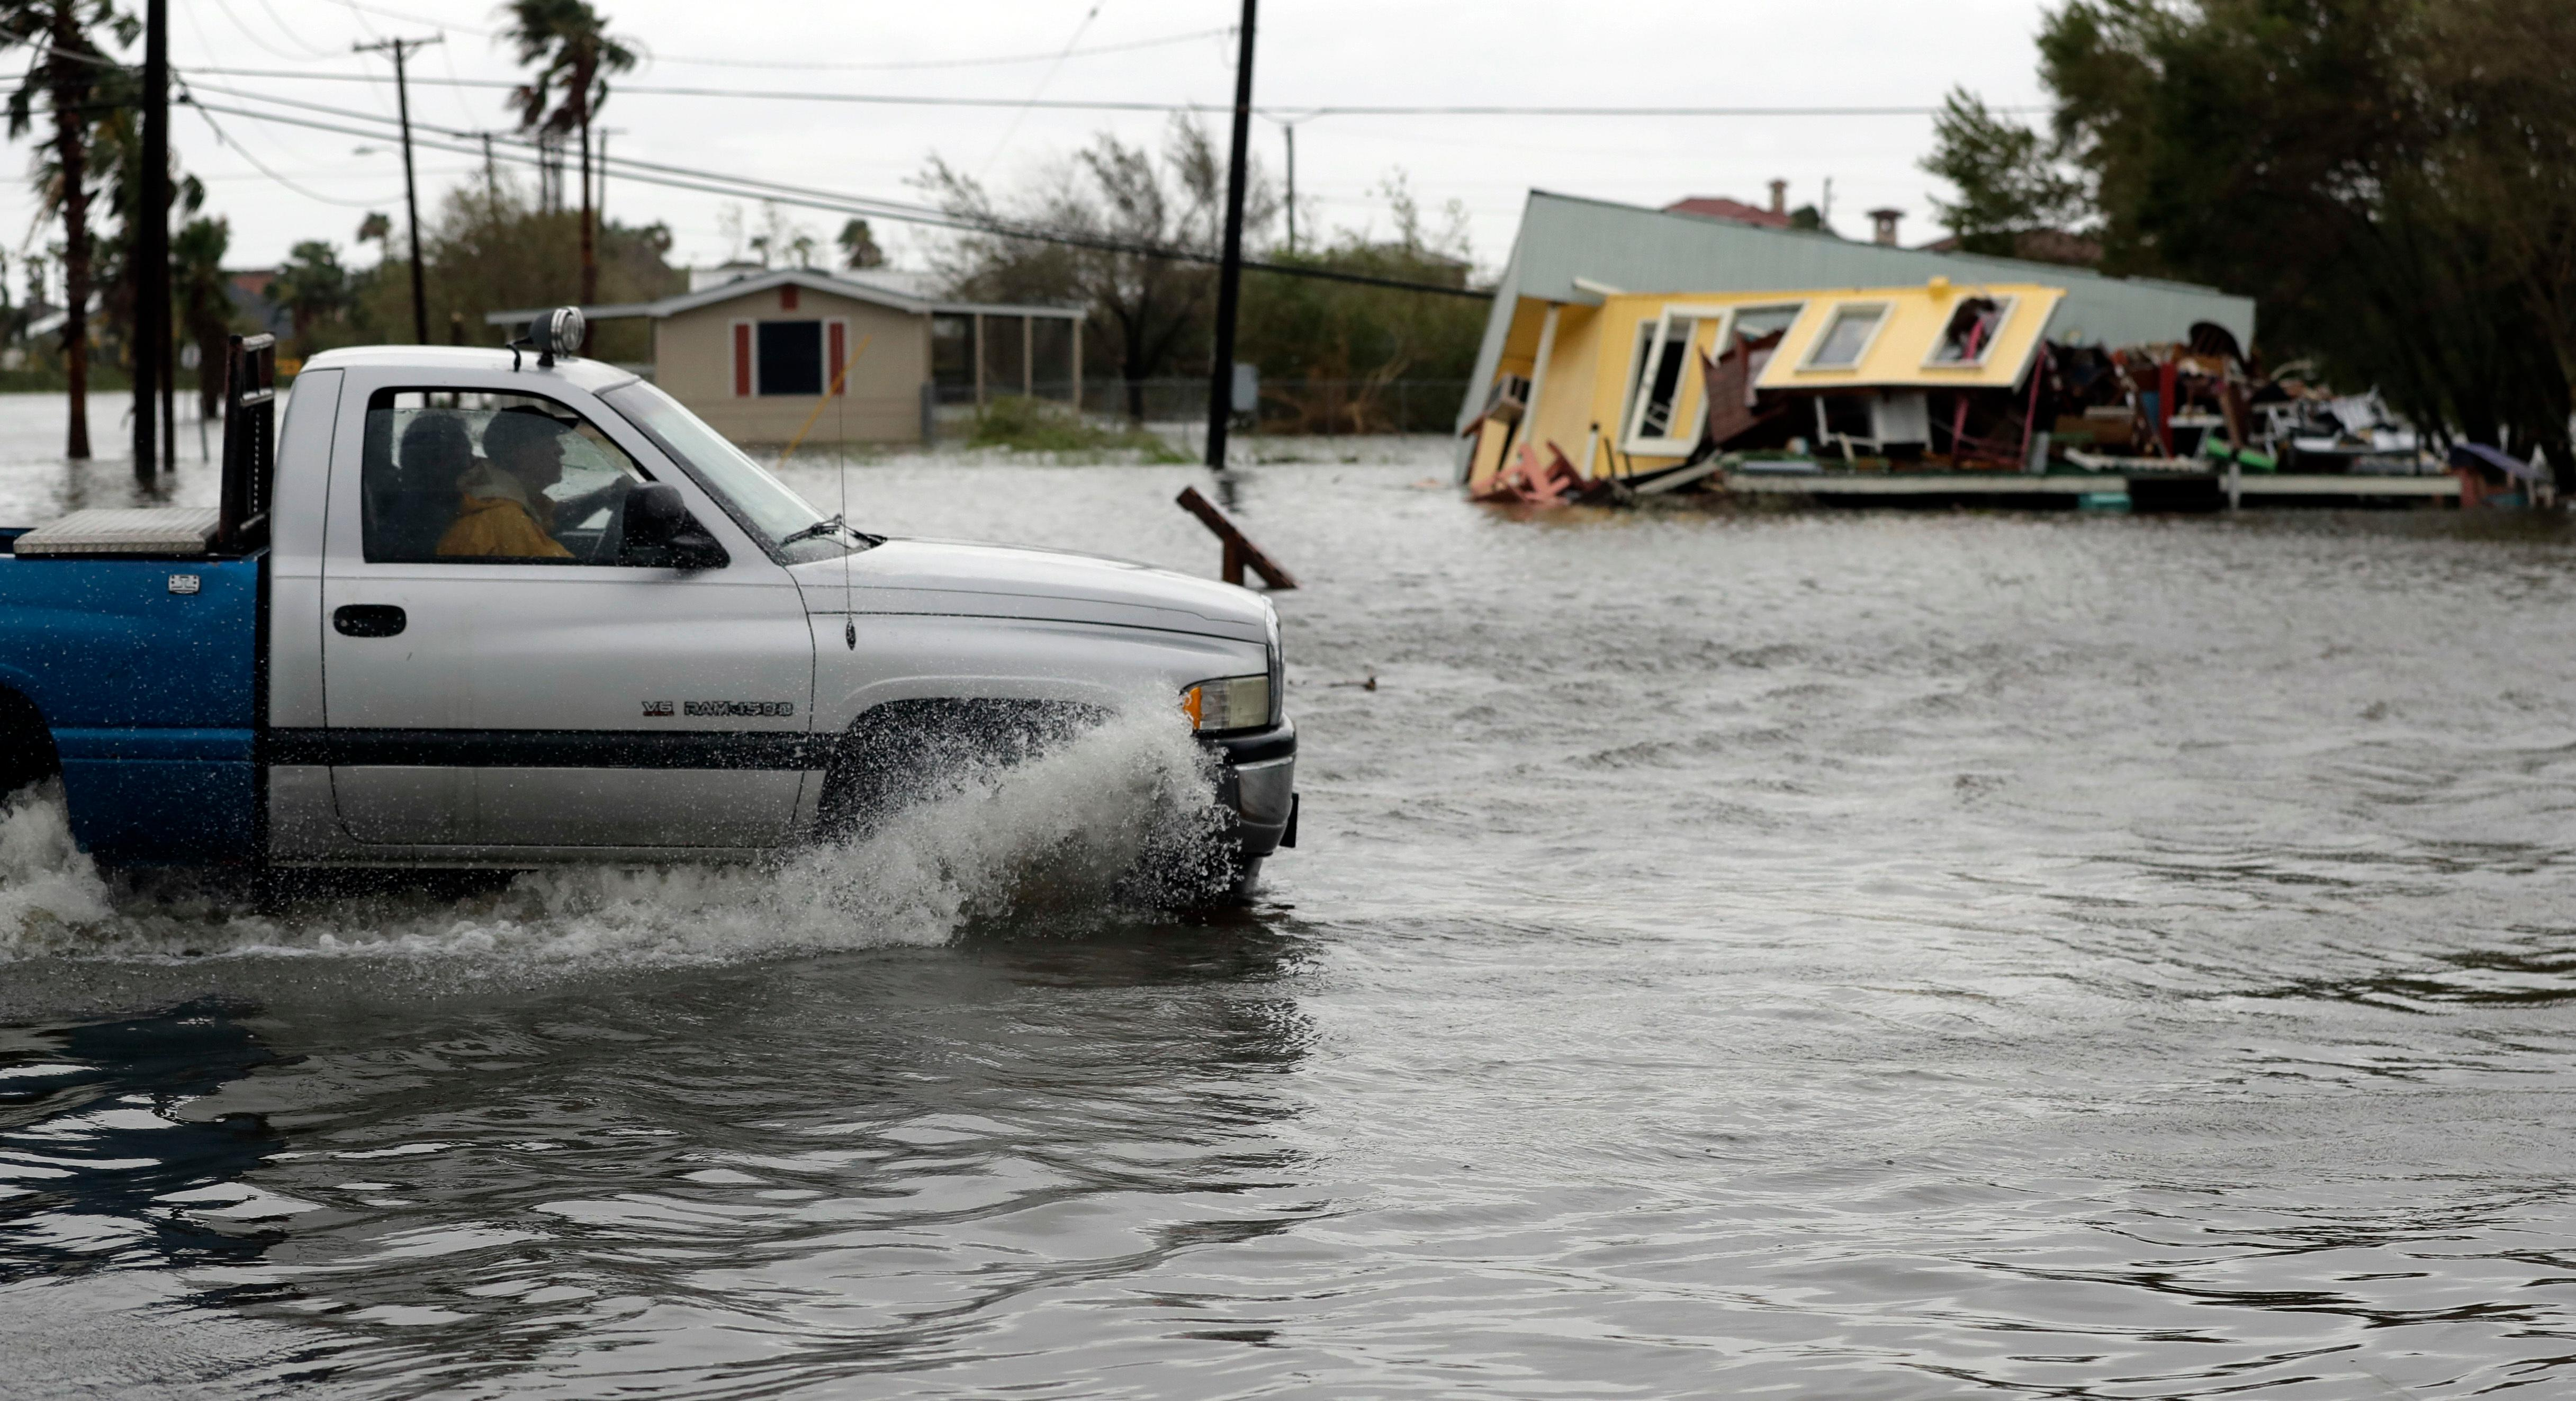 A truck in flood waters passes a home damaged in the wake of Hurricane Harvey, Saturday, Aug. 26, 2017, in Aransas Pass, Texas.  Harvey rolled over the Texas Gulf Coast on Saturday, smashing homes and businesses and lashing the shore with wind and rain so intense that drivers were forced off the road because they could not see in front of them. (AP Photo/Eric Gay)